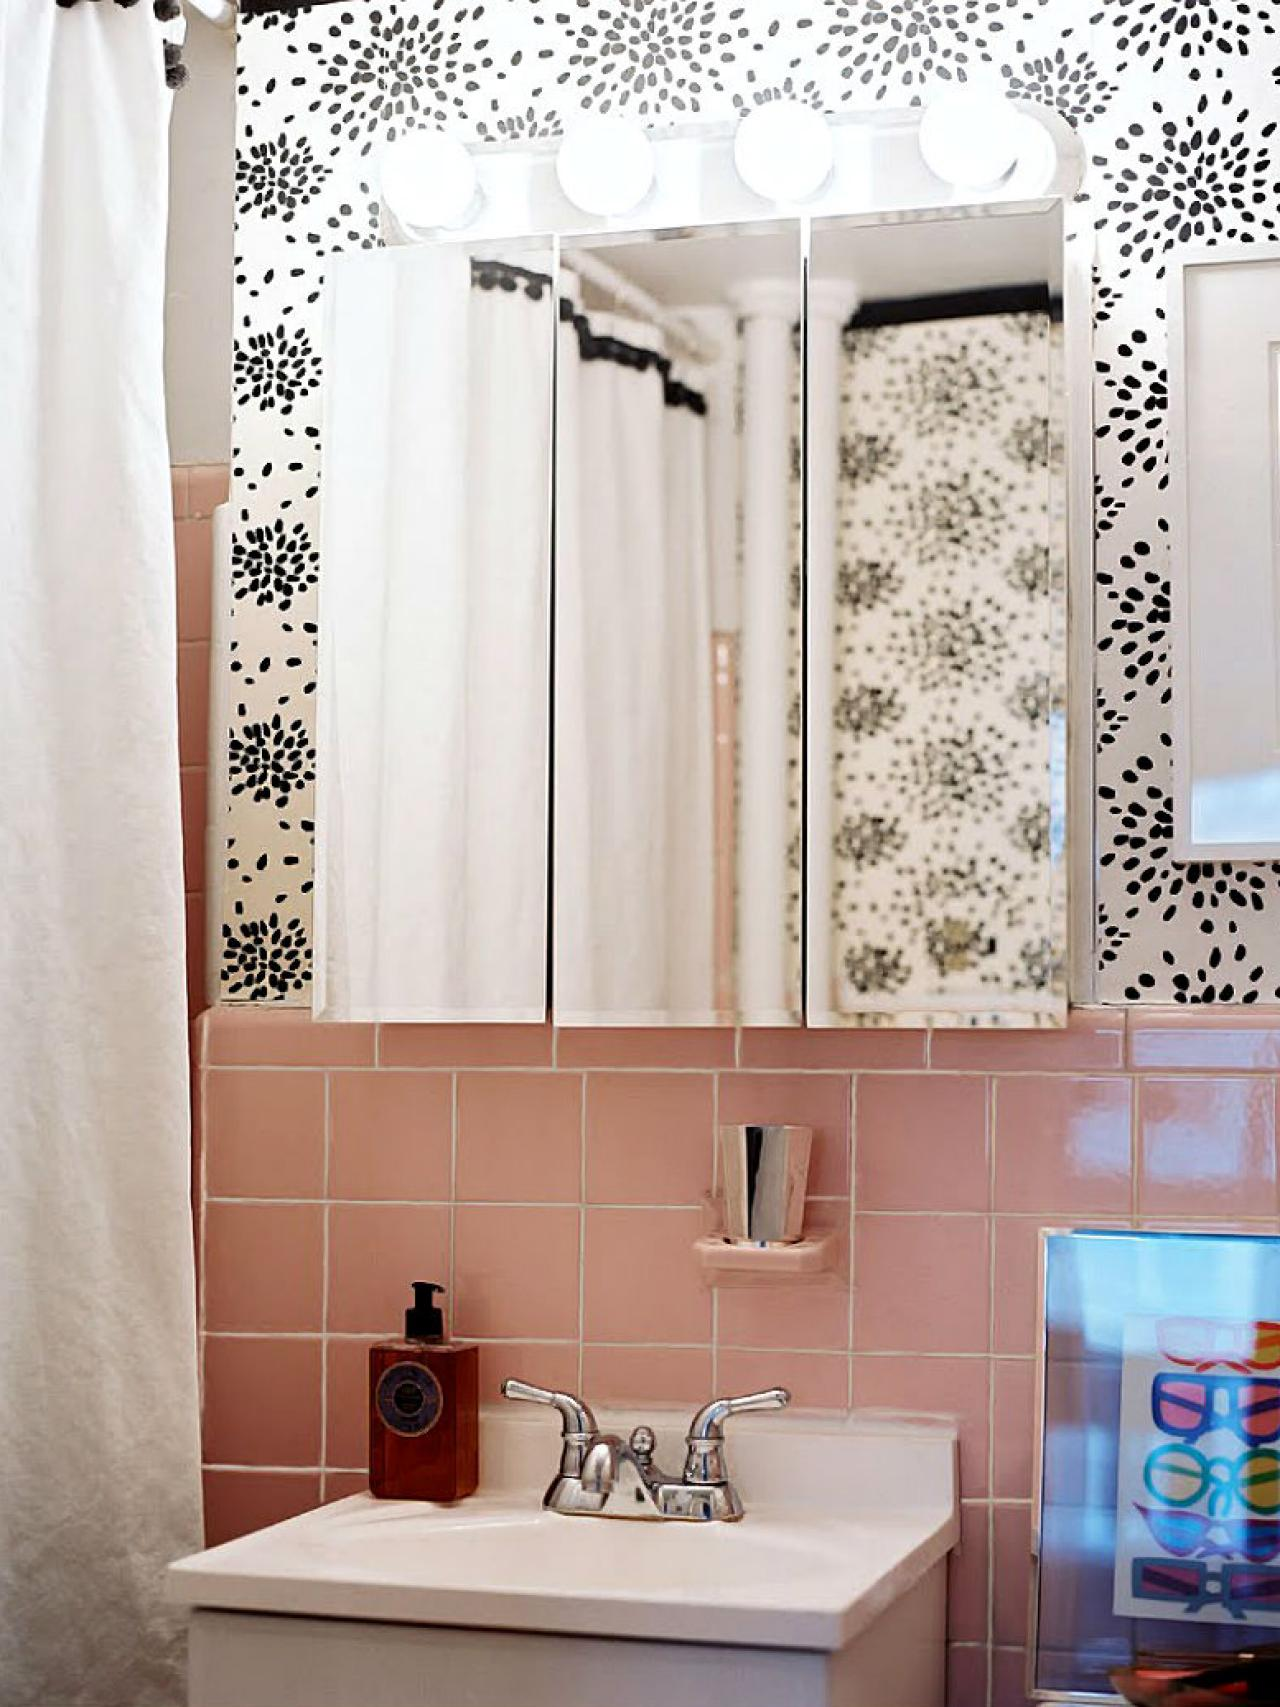 Reasons To Love Retro Pink Tiled Bathrooms | HGTVu0027s Decorating U0026 Design  Blog | HGTV